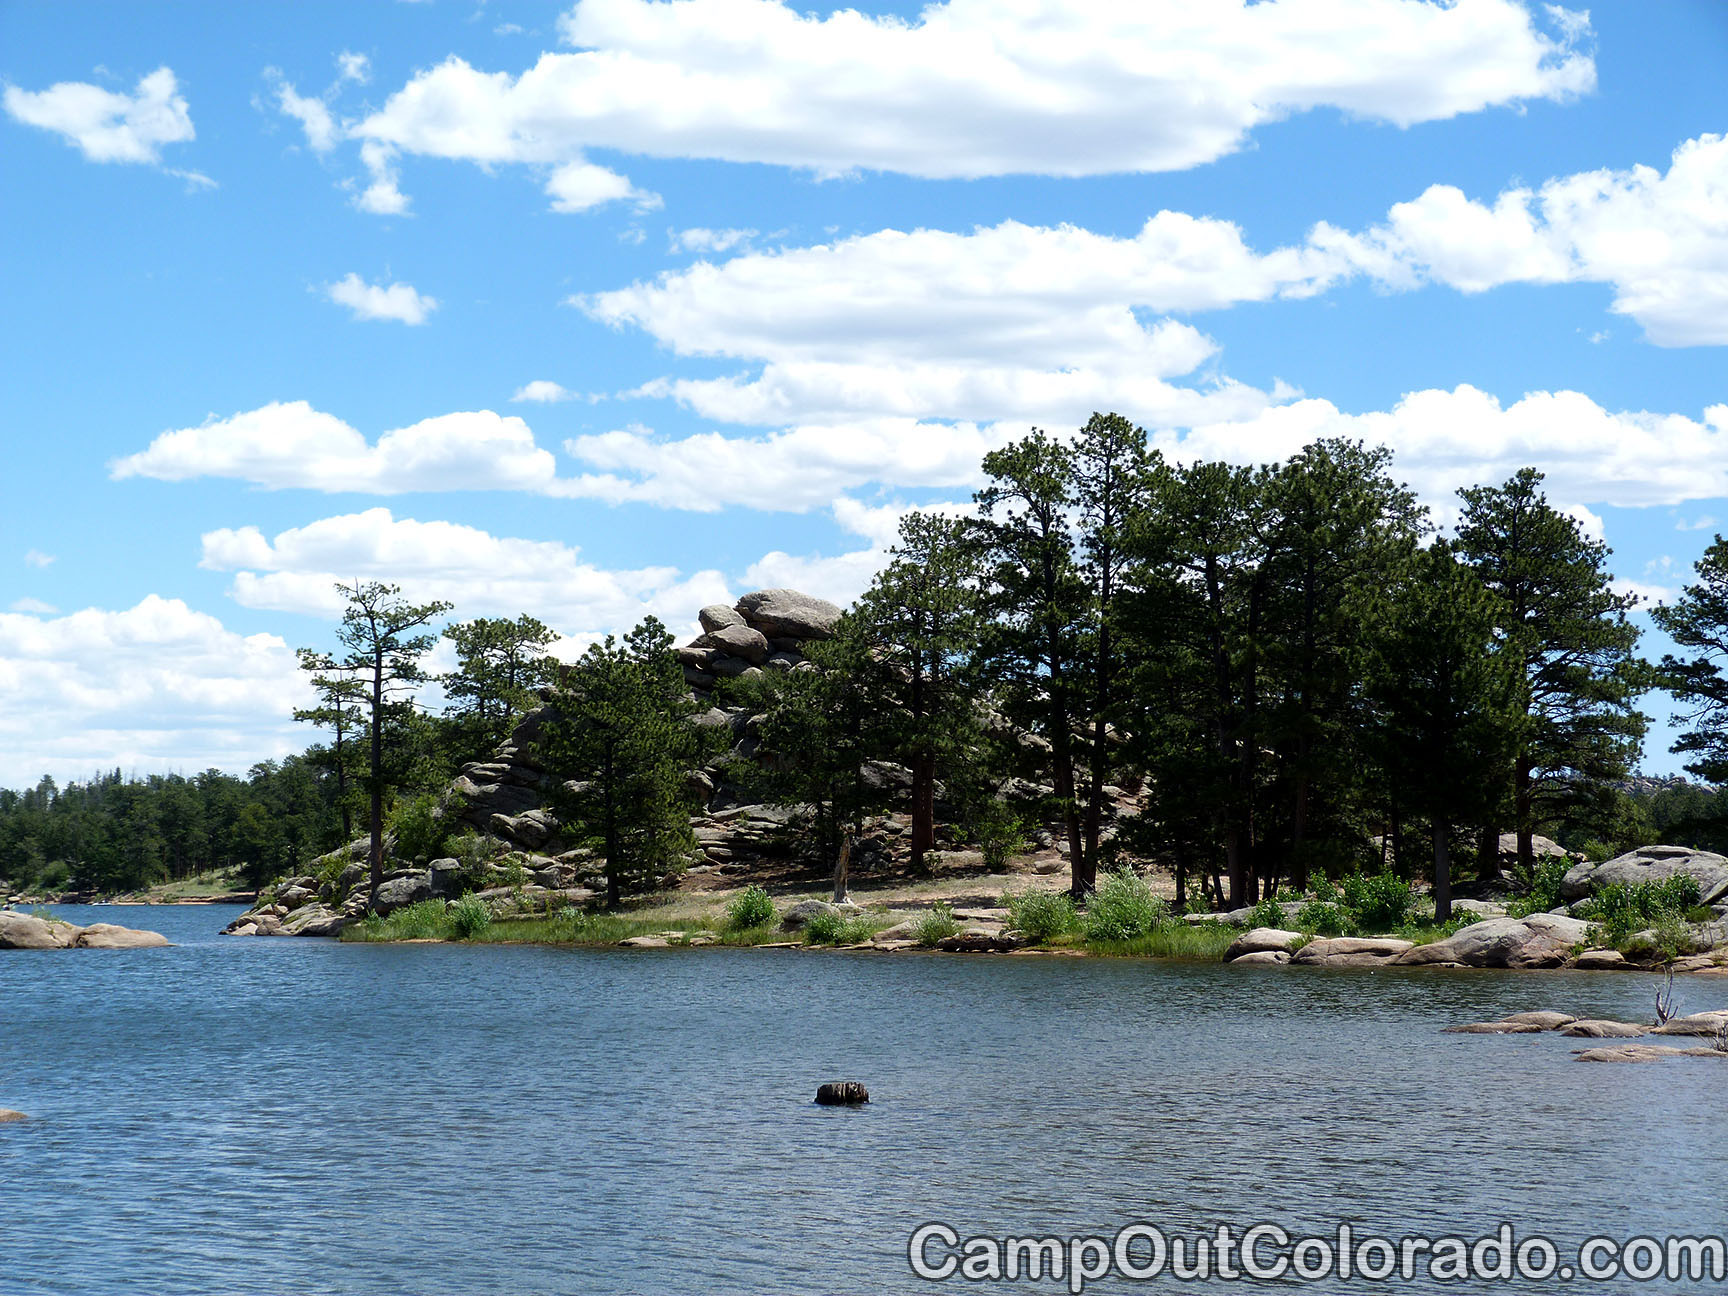 Campoutcolorado-dowdy-lake-campground-boulder-mound